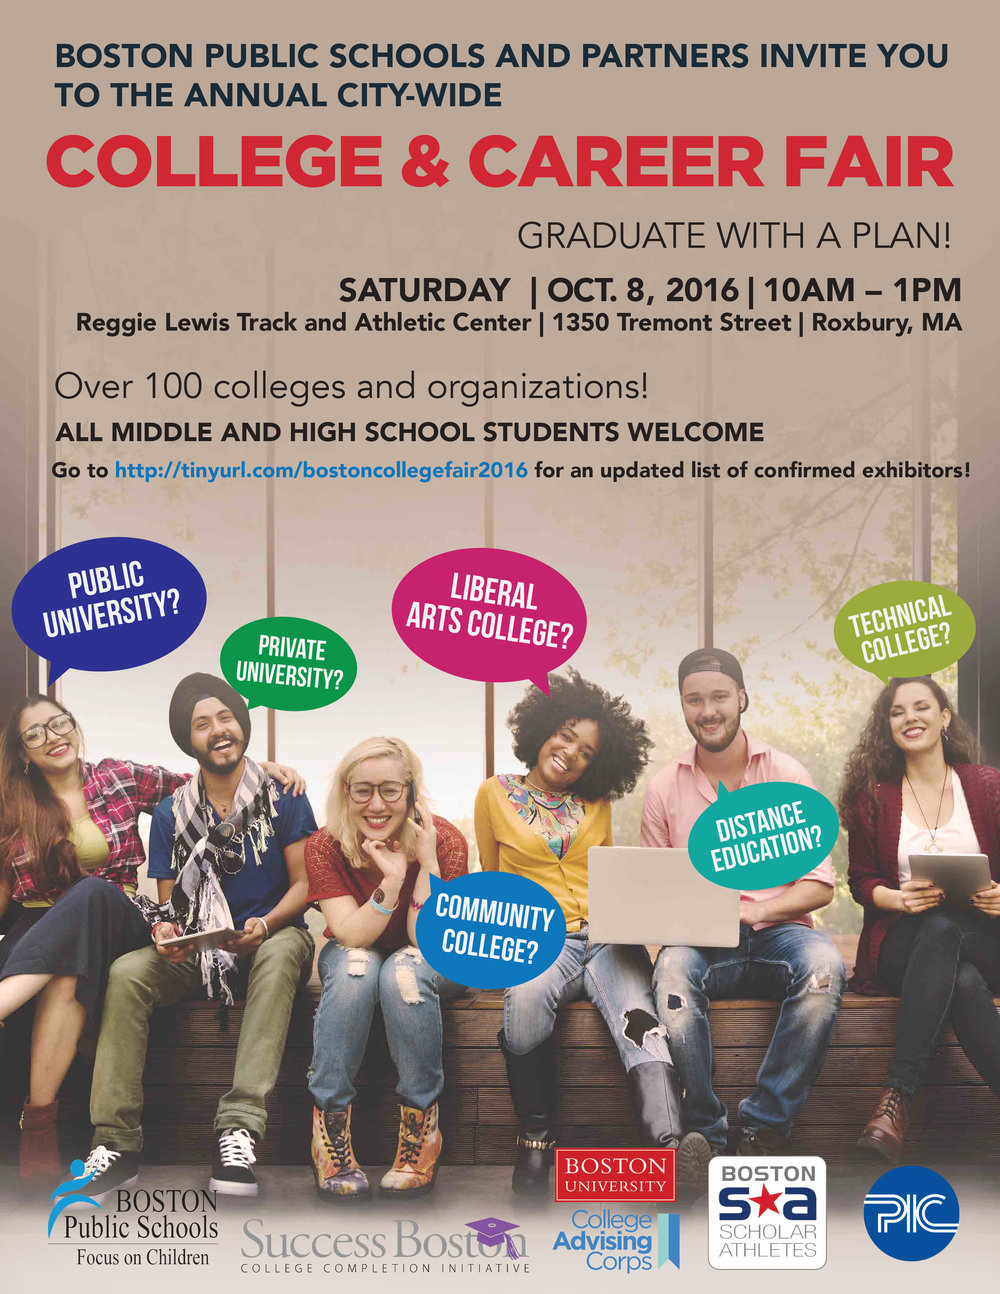 Boston Public Schools - College & Career Fair 2016